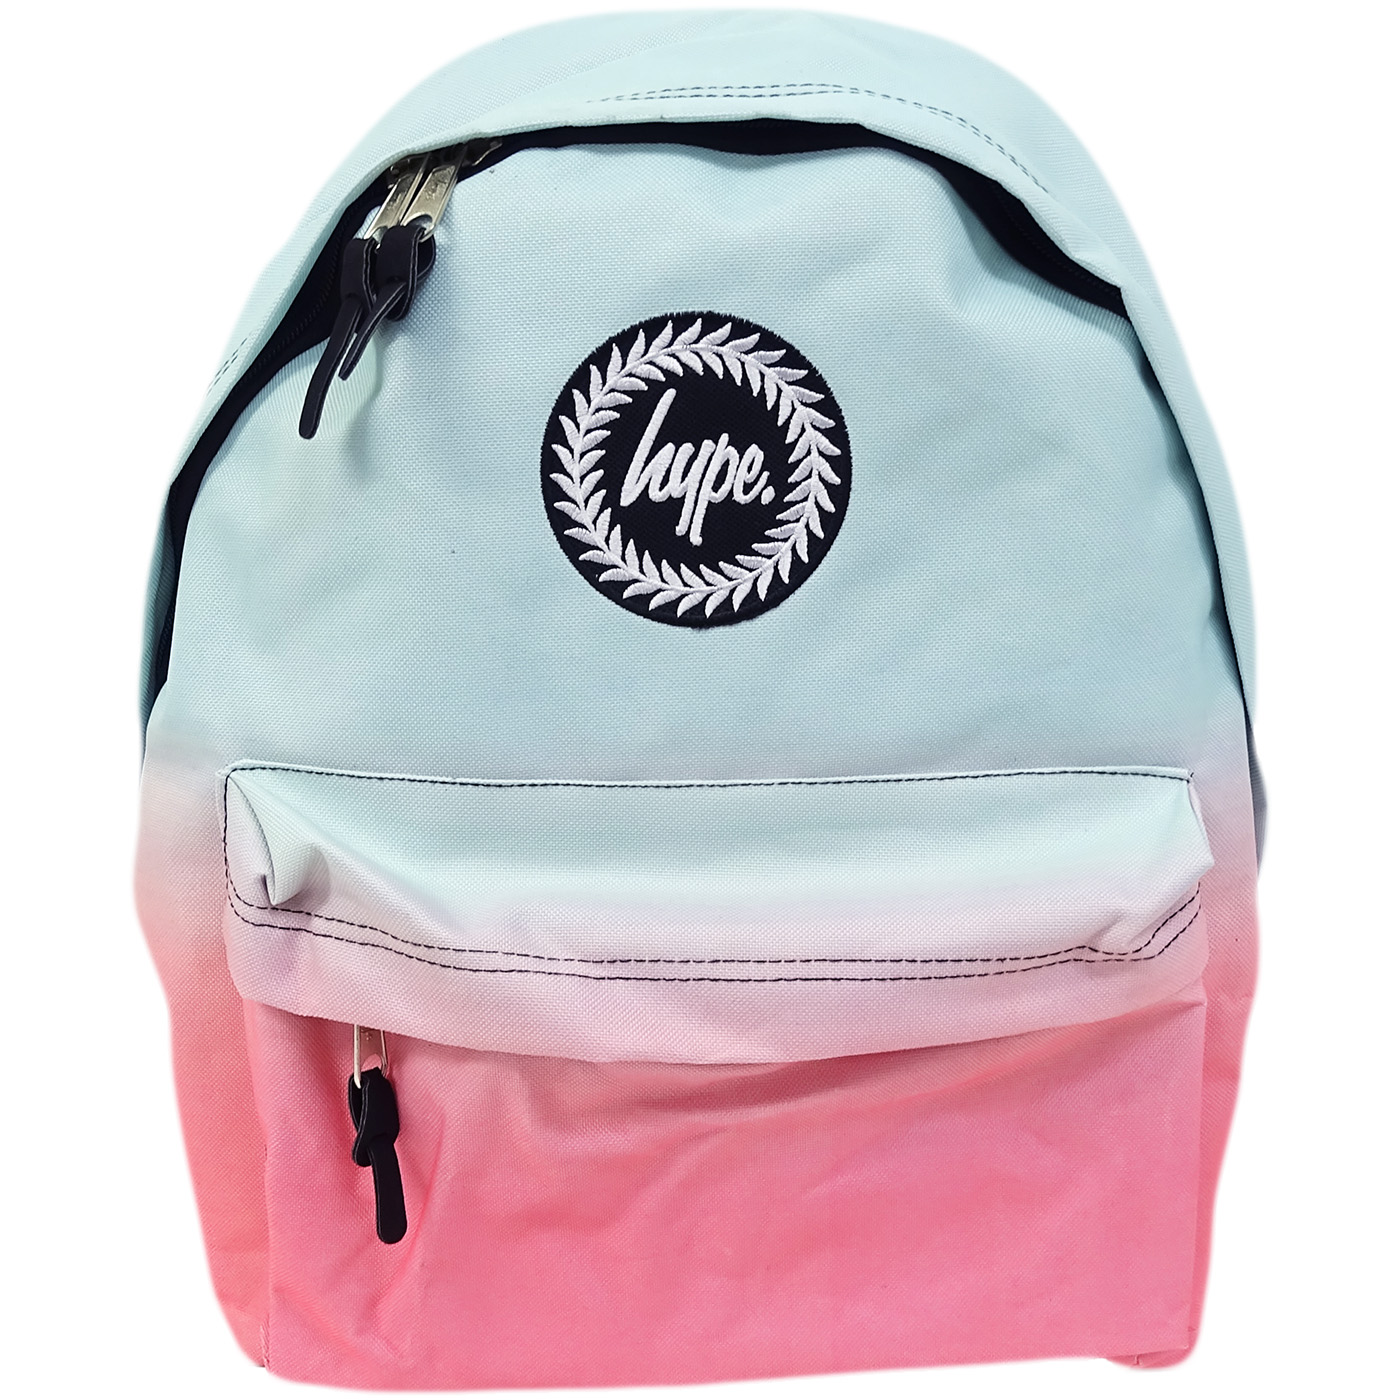 Hype Handbags Official Site